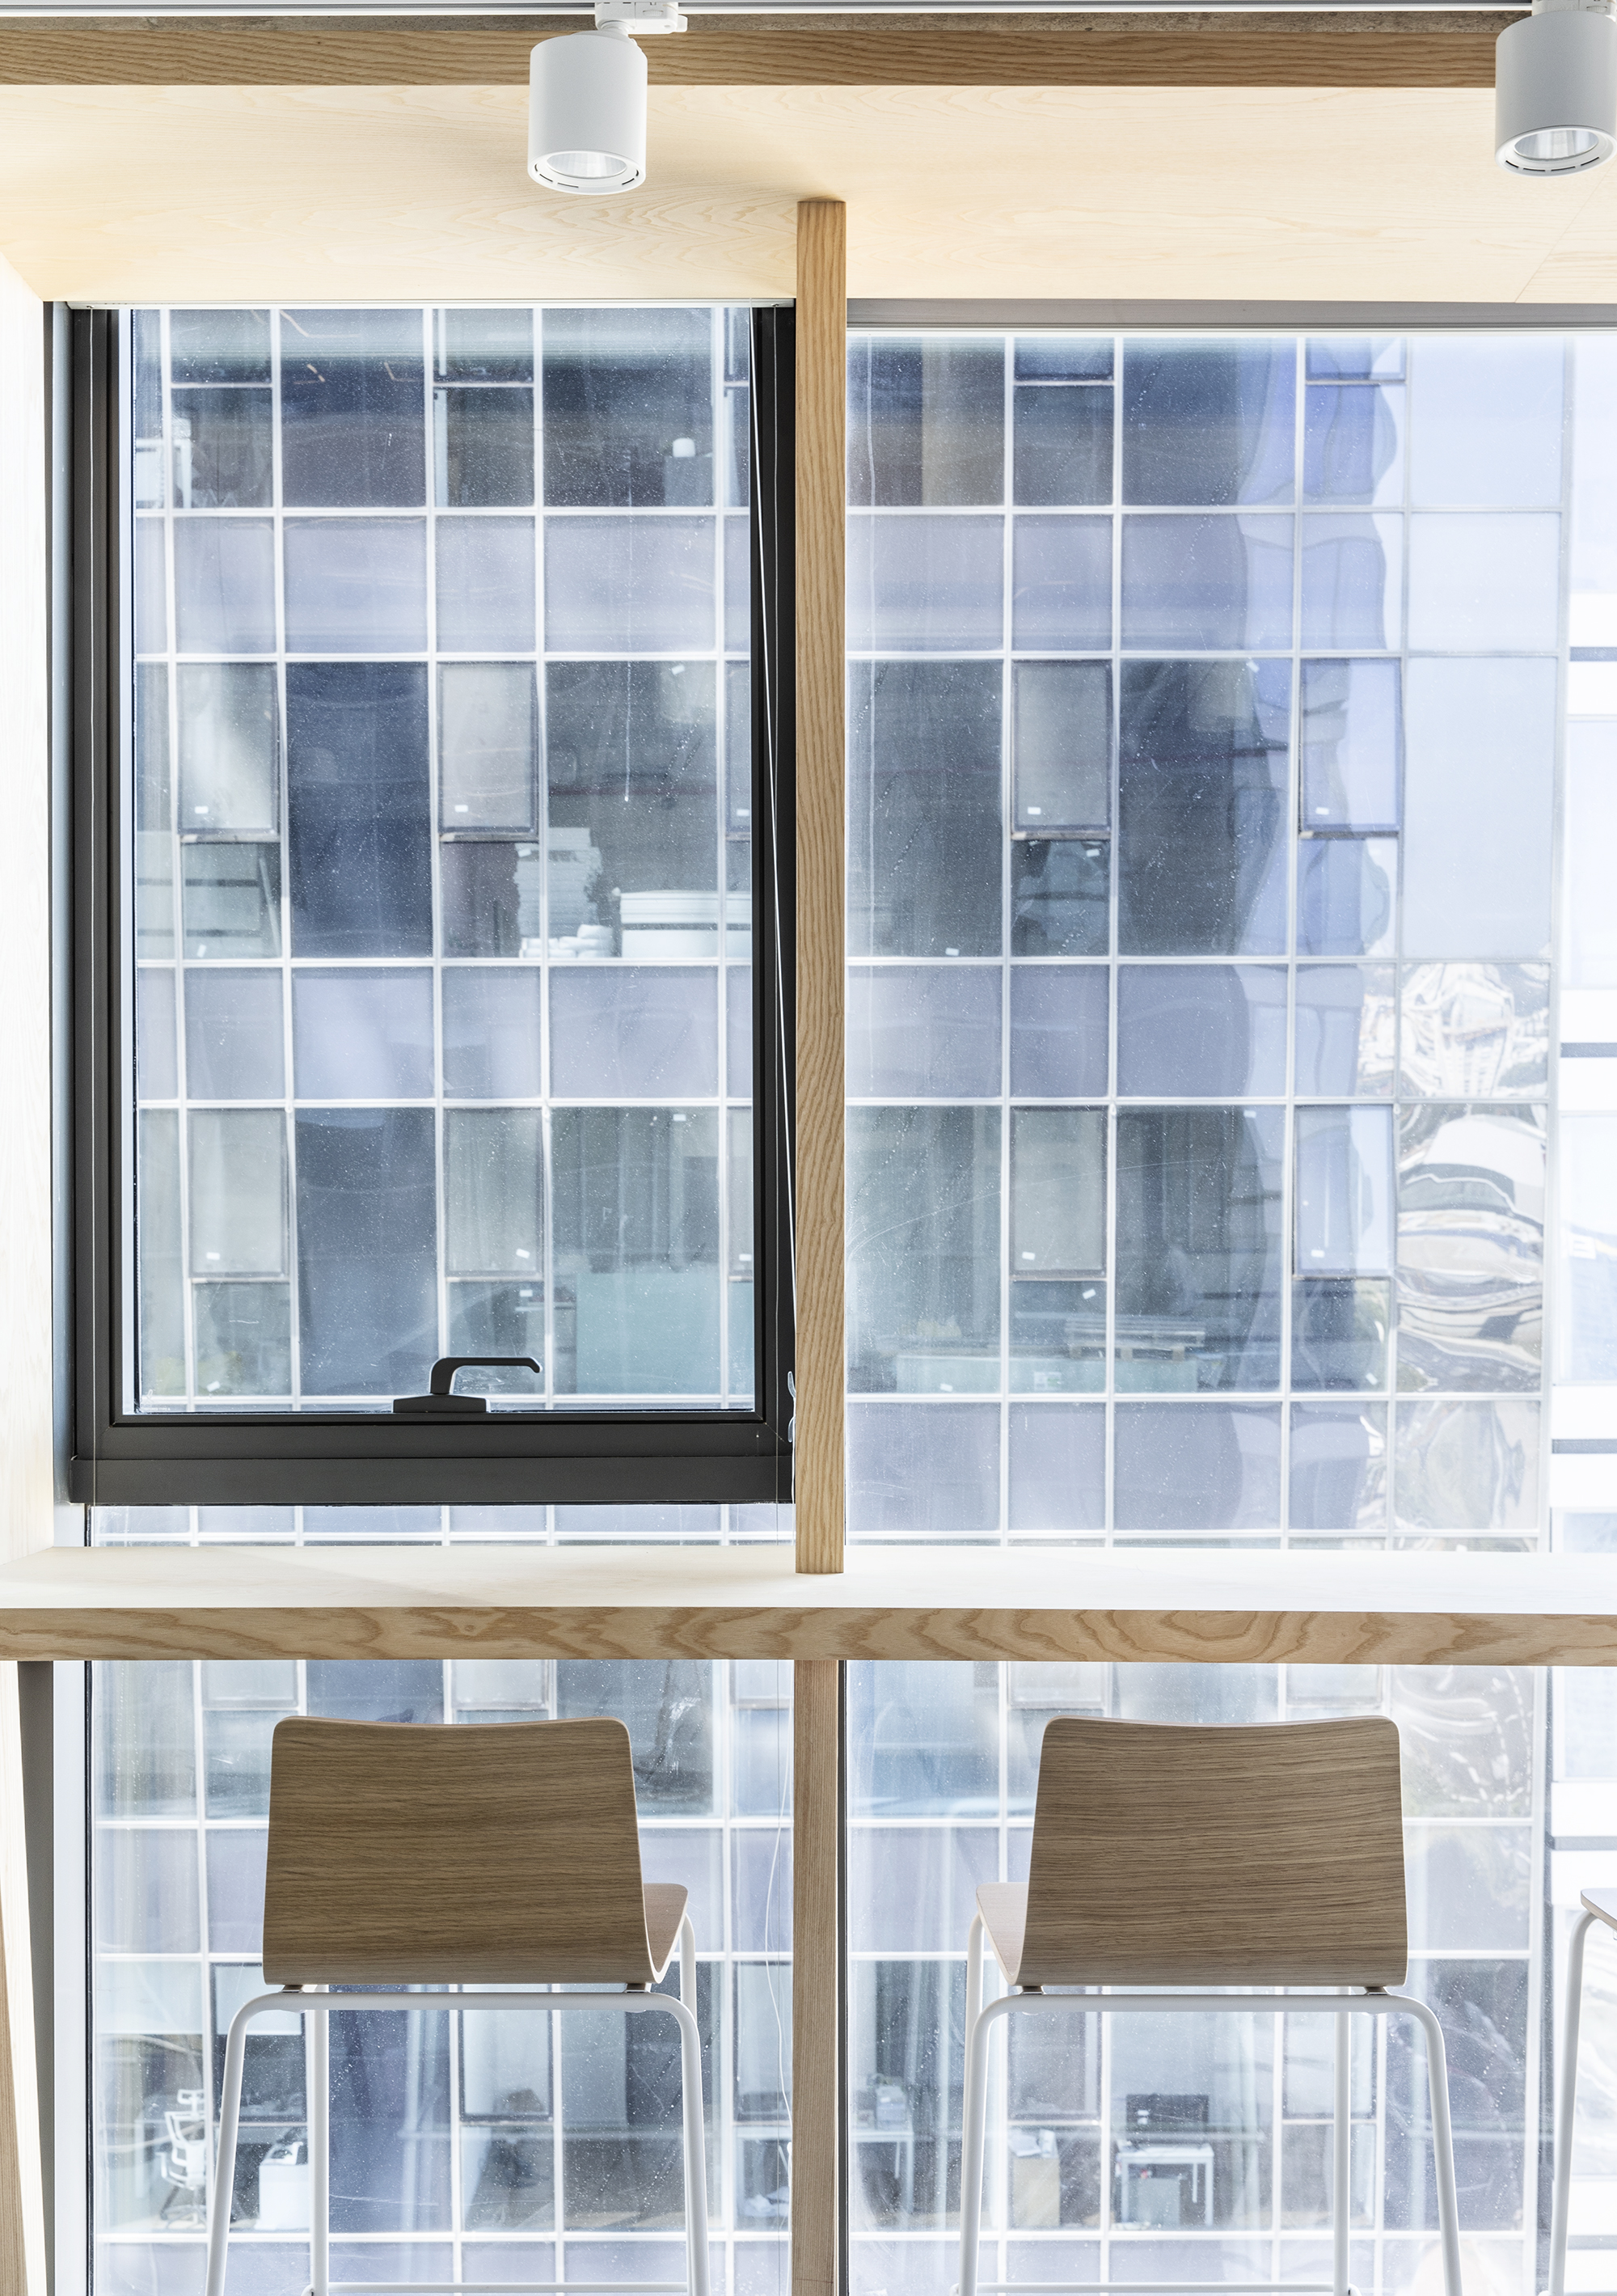 026_סטודיו רואי דוד - ROY DAVID ARCHITECTURE - NUVO OFFICES.jpg